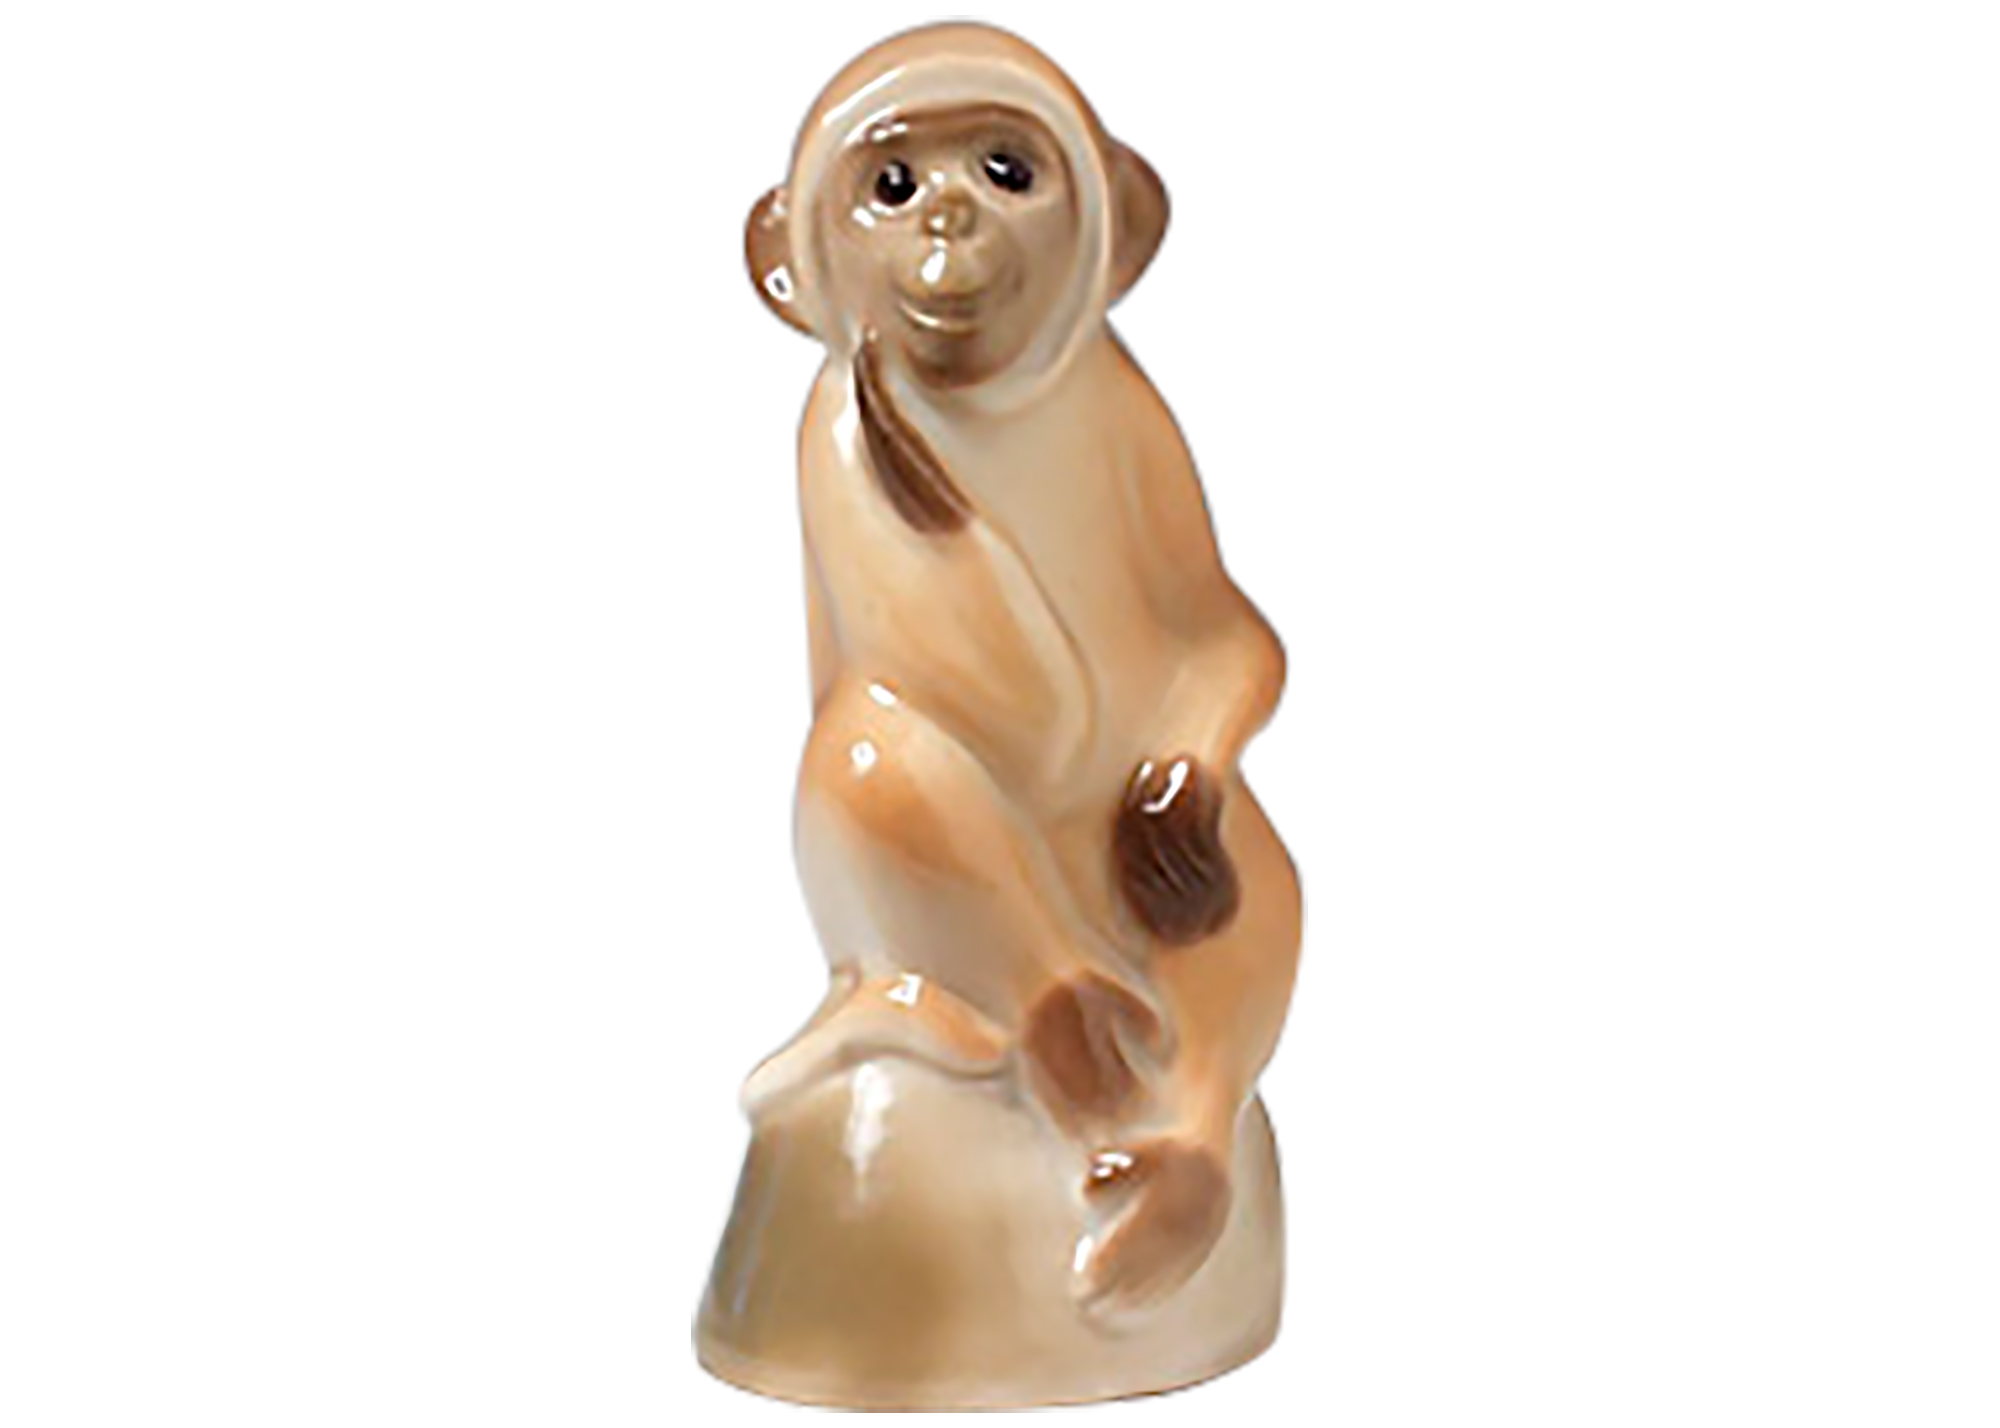 Buy Monkey on Stand Figurine at GoldenCockerel.com